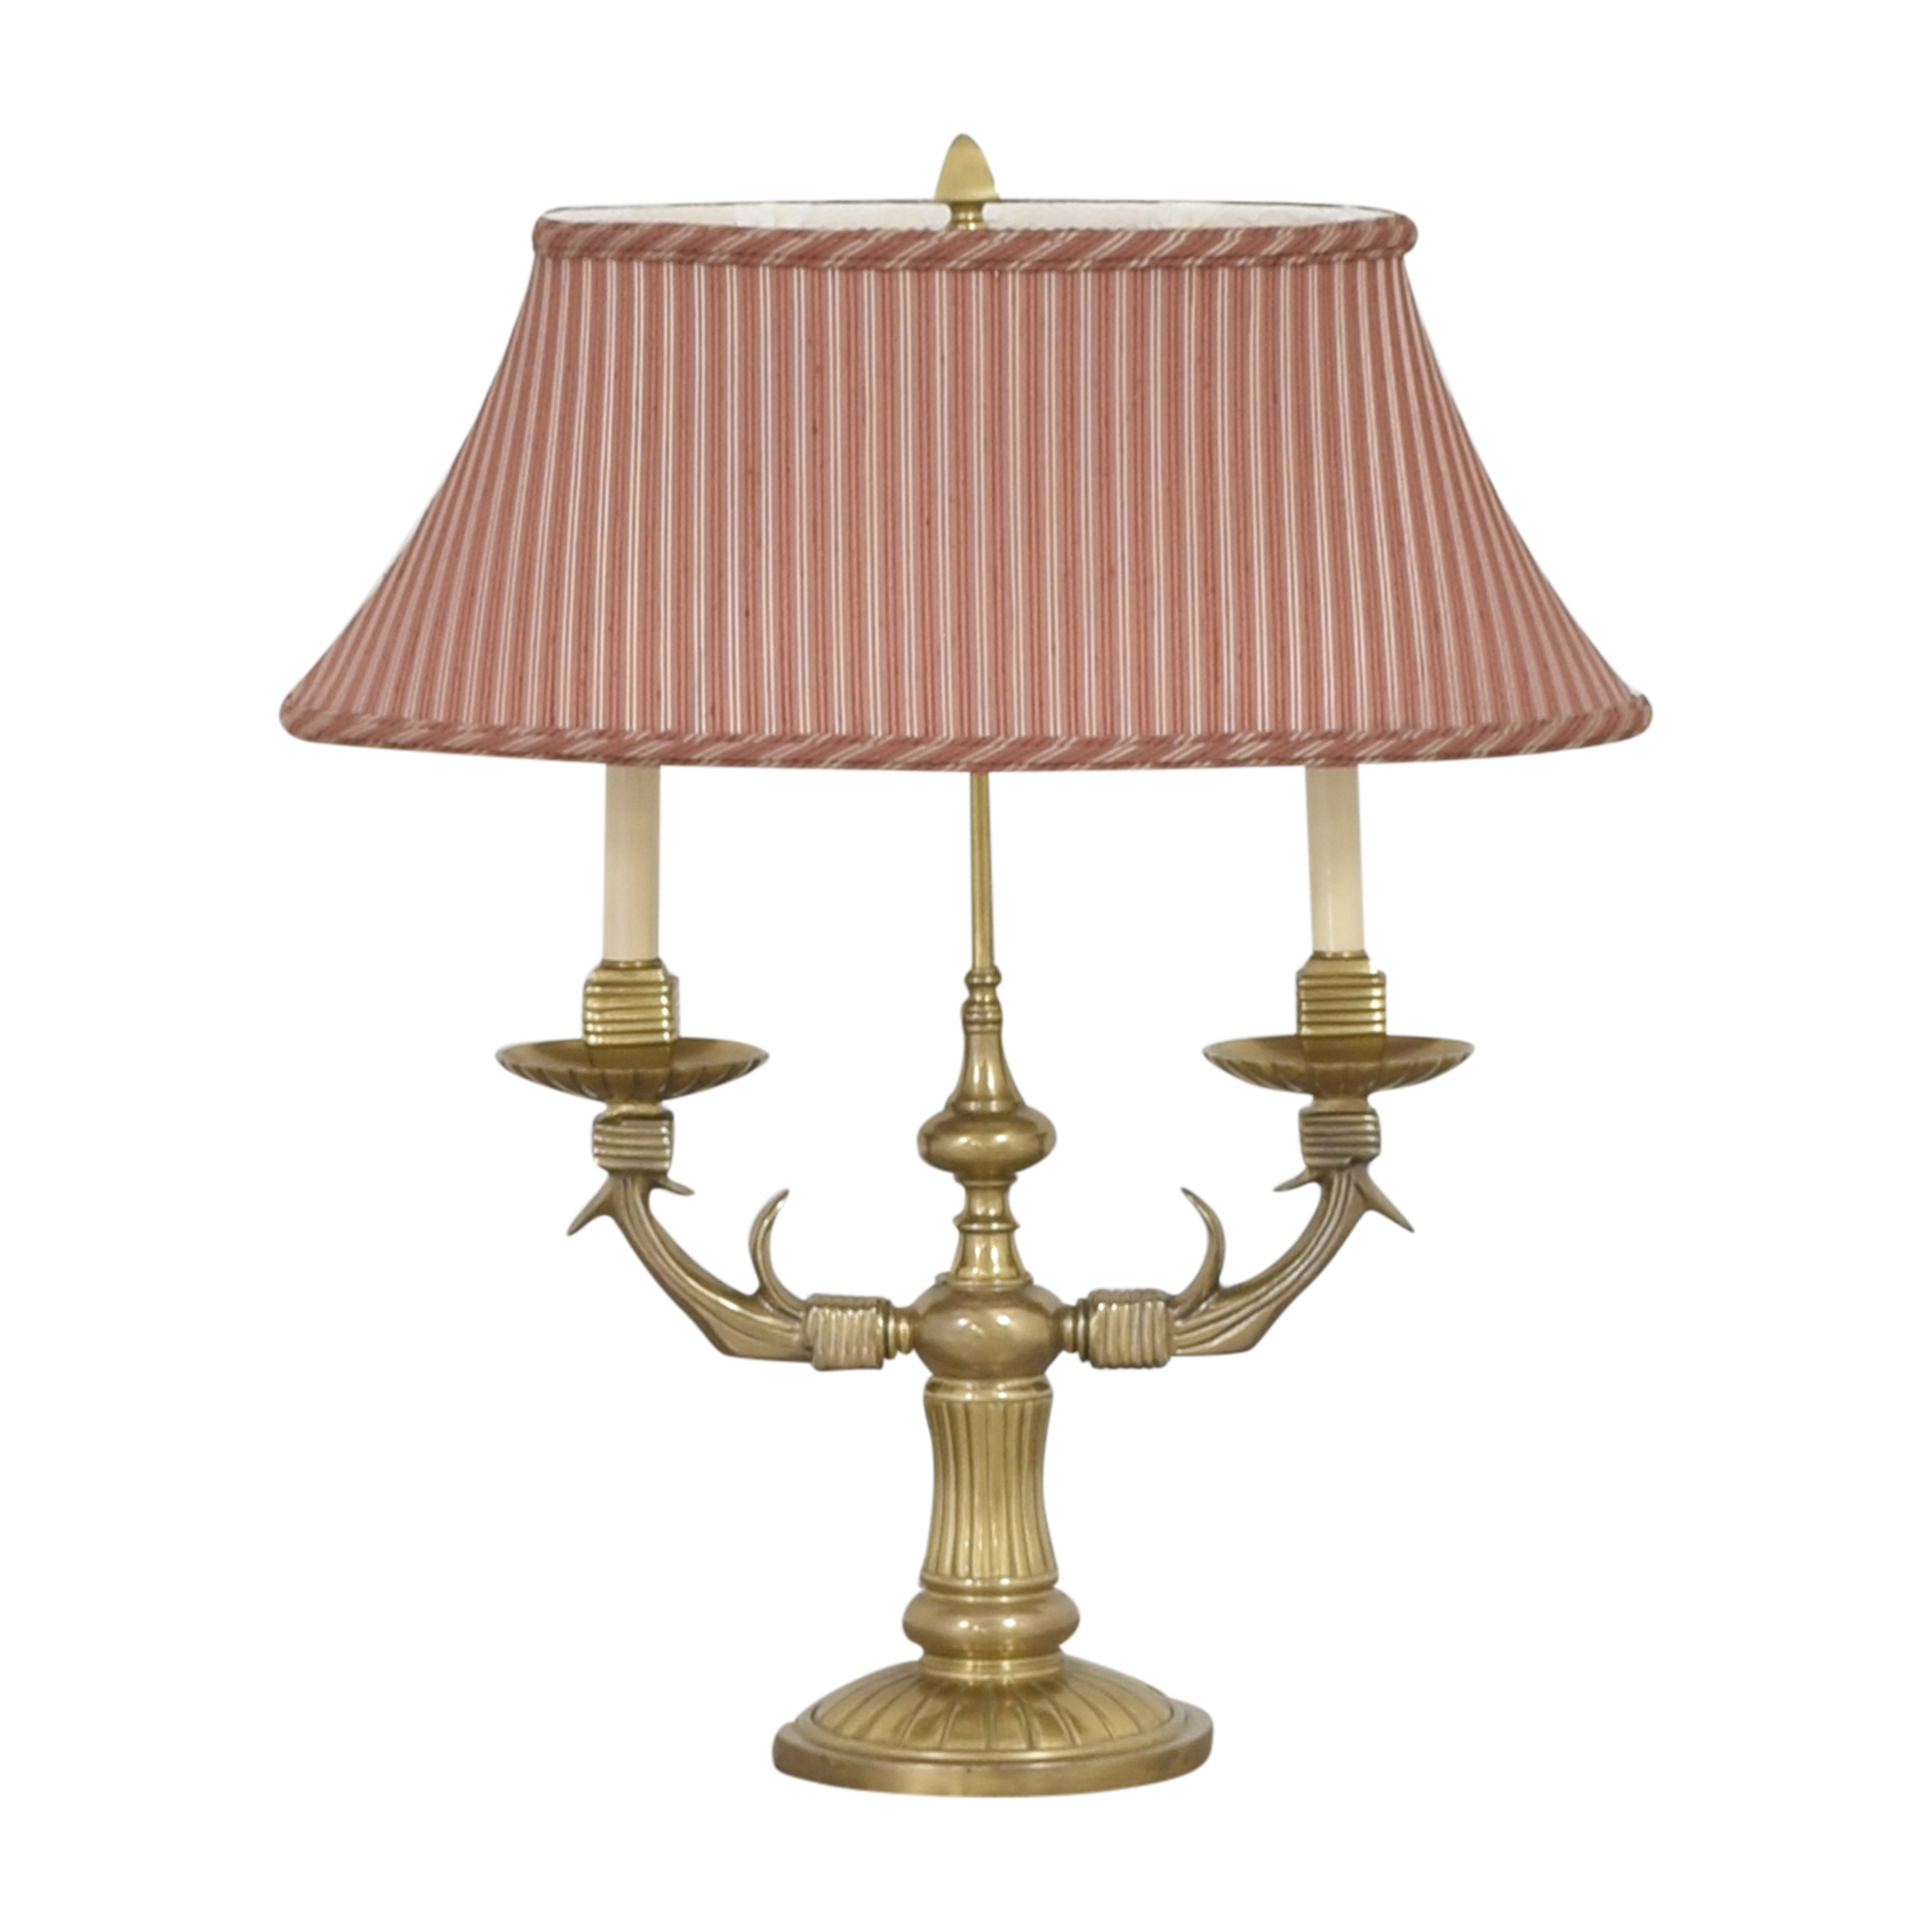 Frederick Cooper Frederick Cooper Two Light Table Lamp used